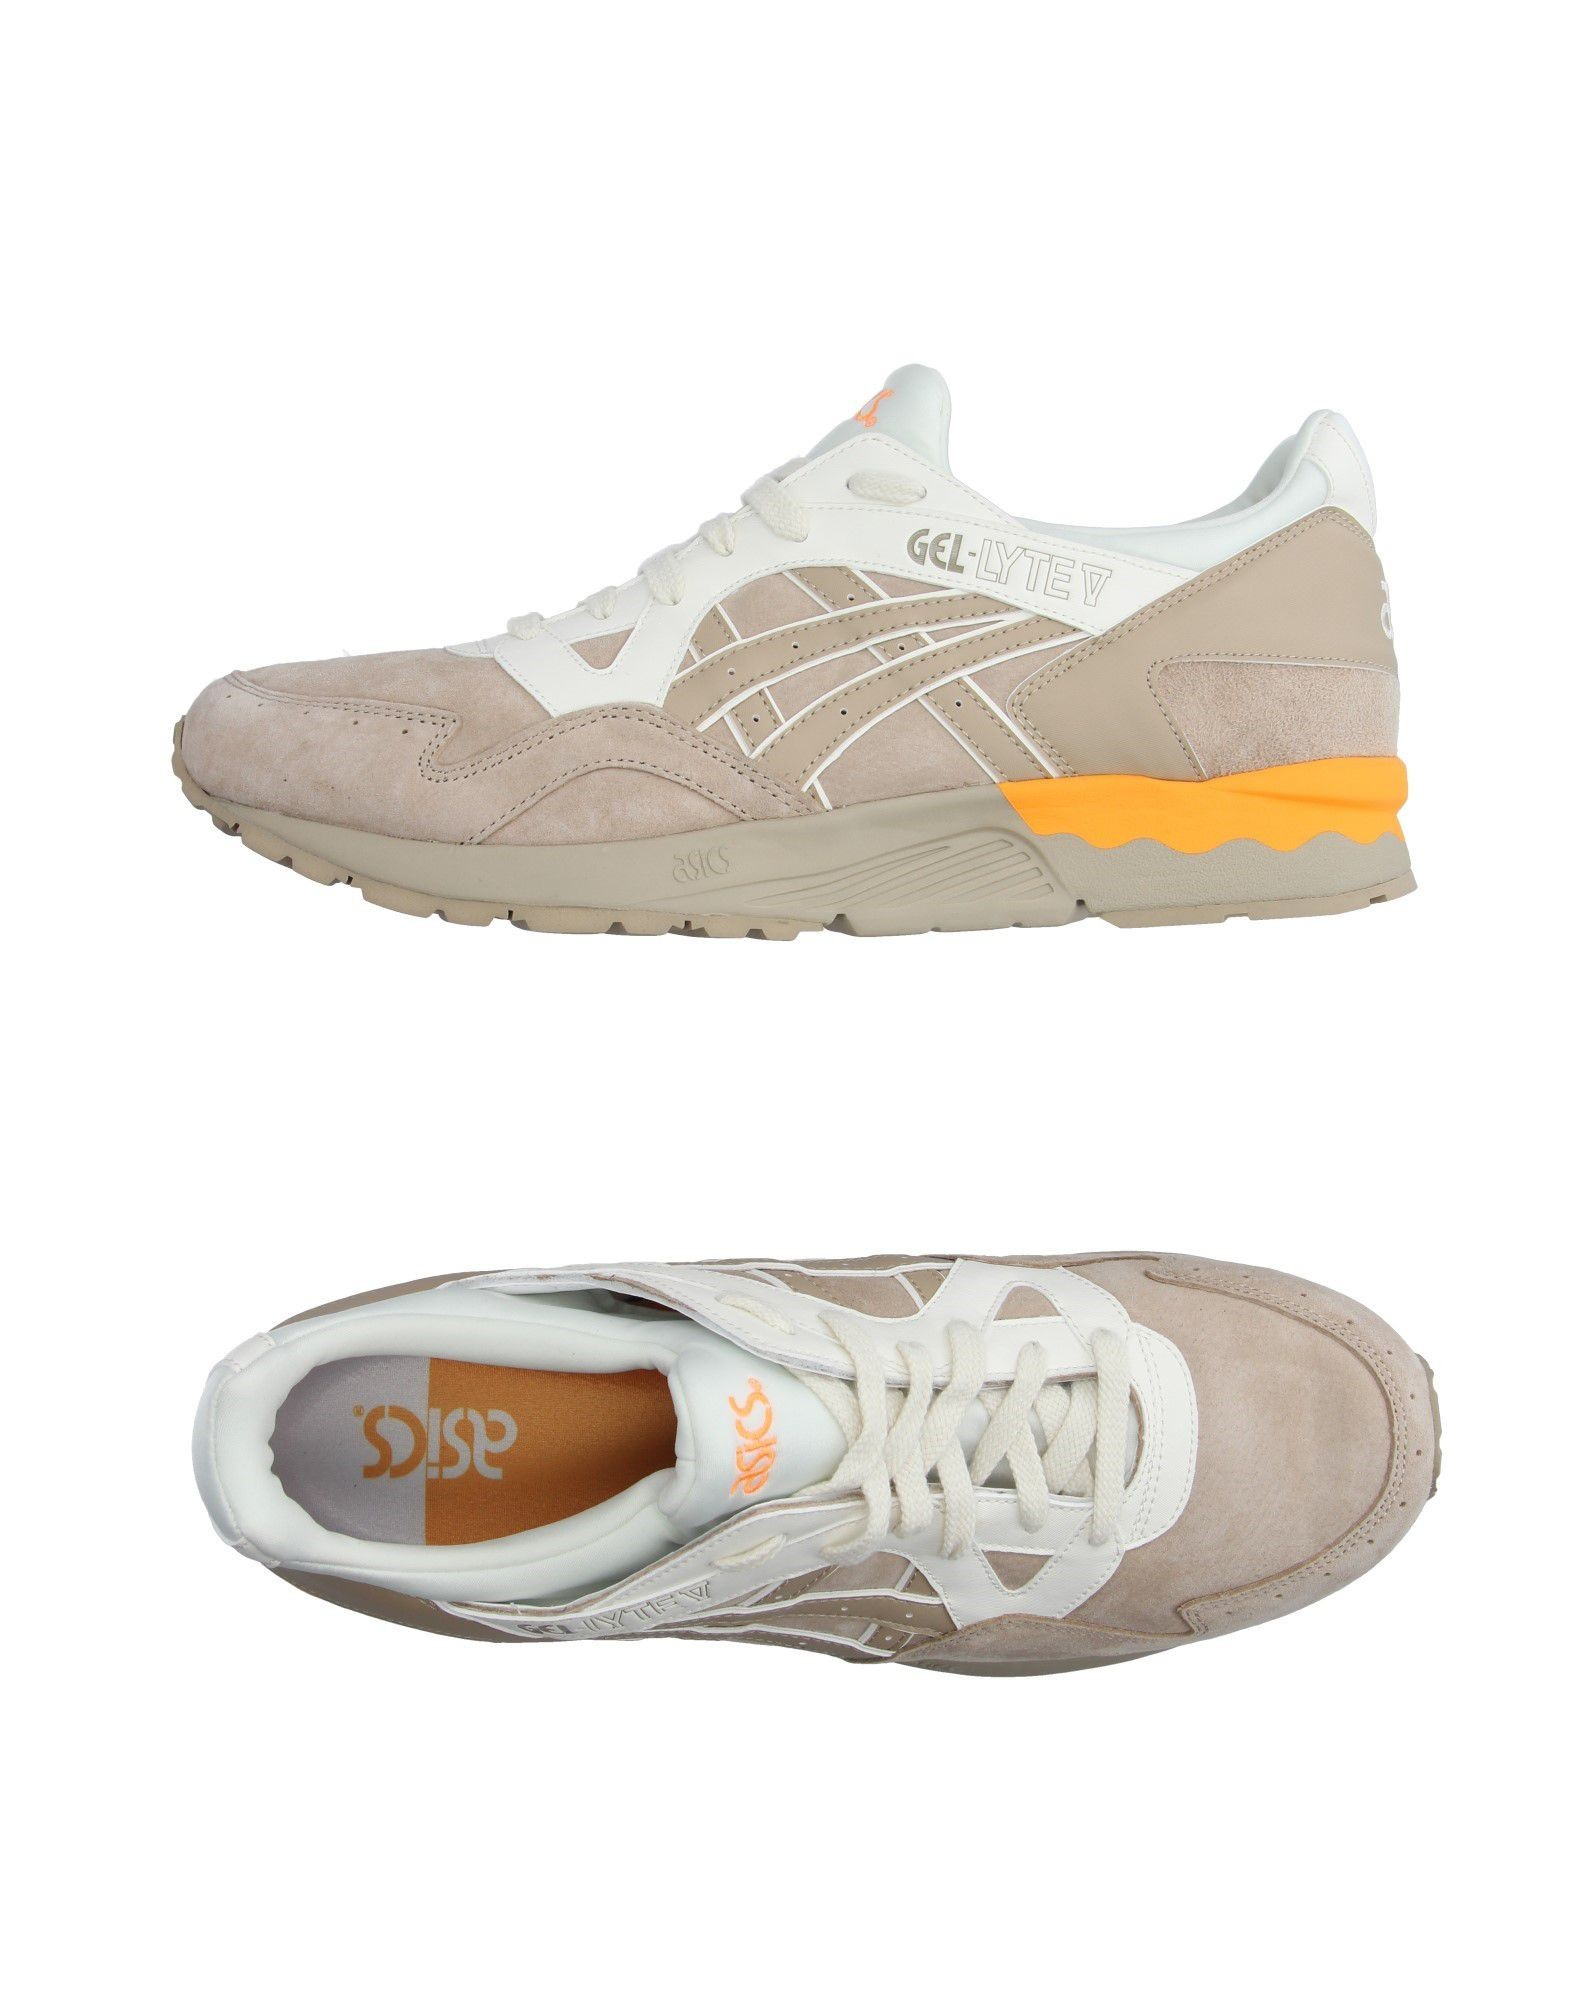 nouvelle collection asics femme